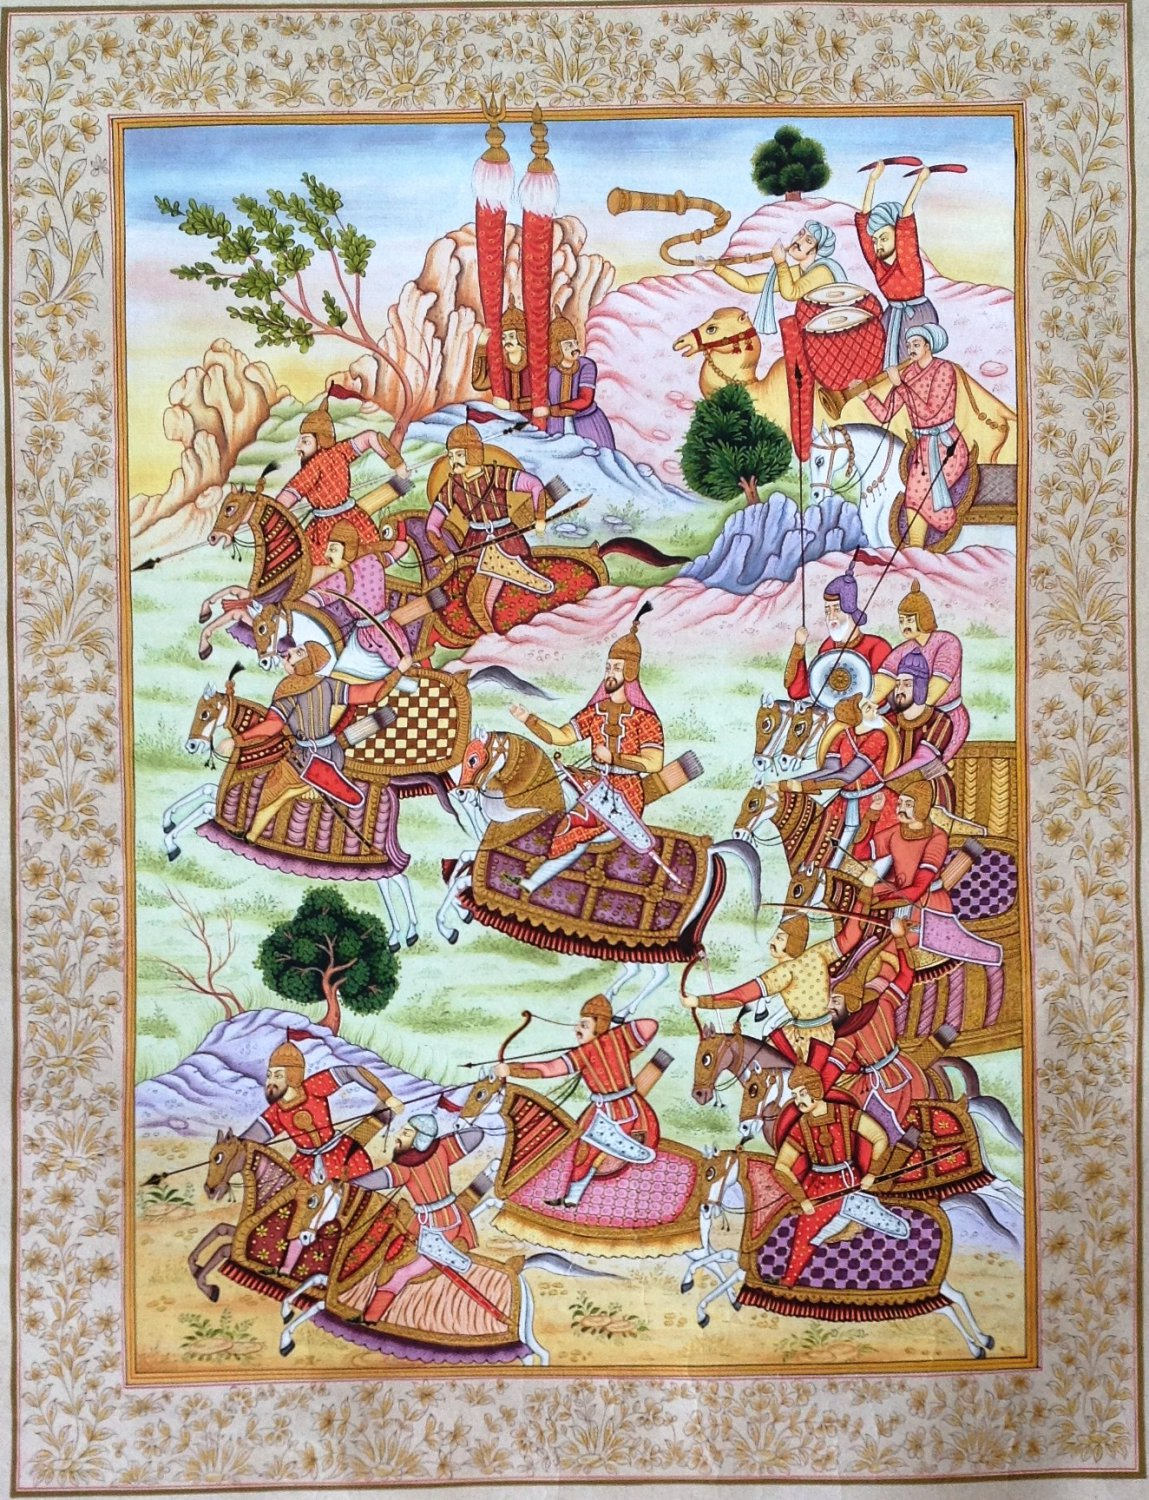 Mughal Painting Hand-Painted Miniature Babur Nama Moghul Empire Historical Art